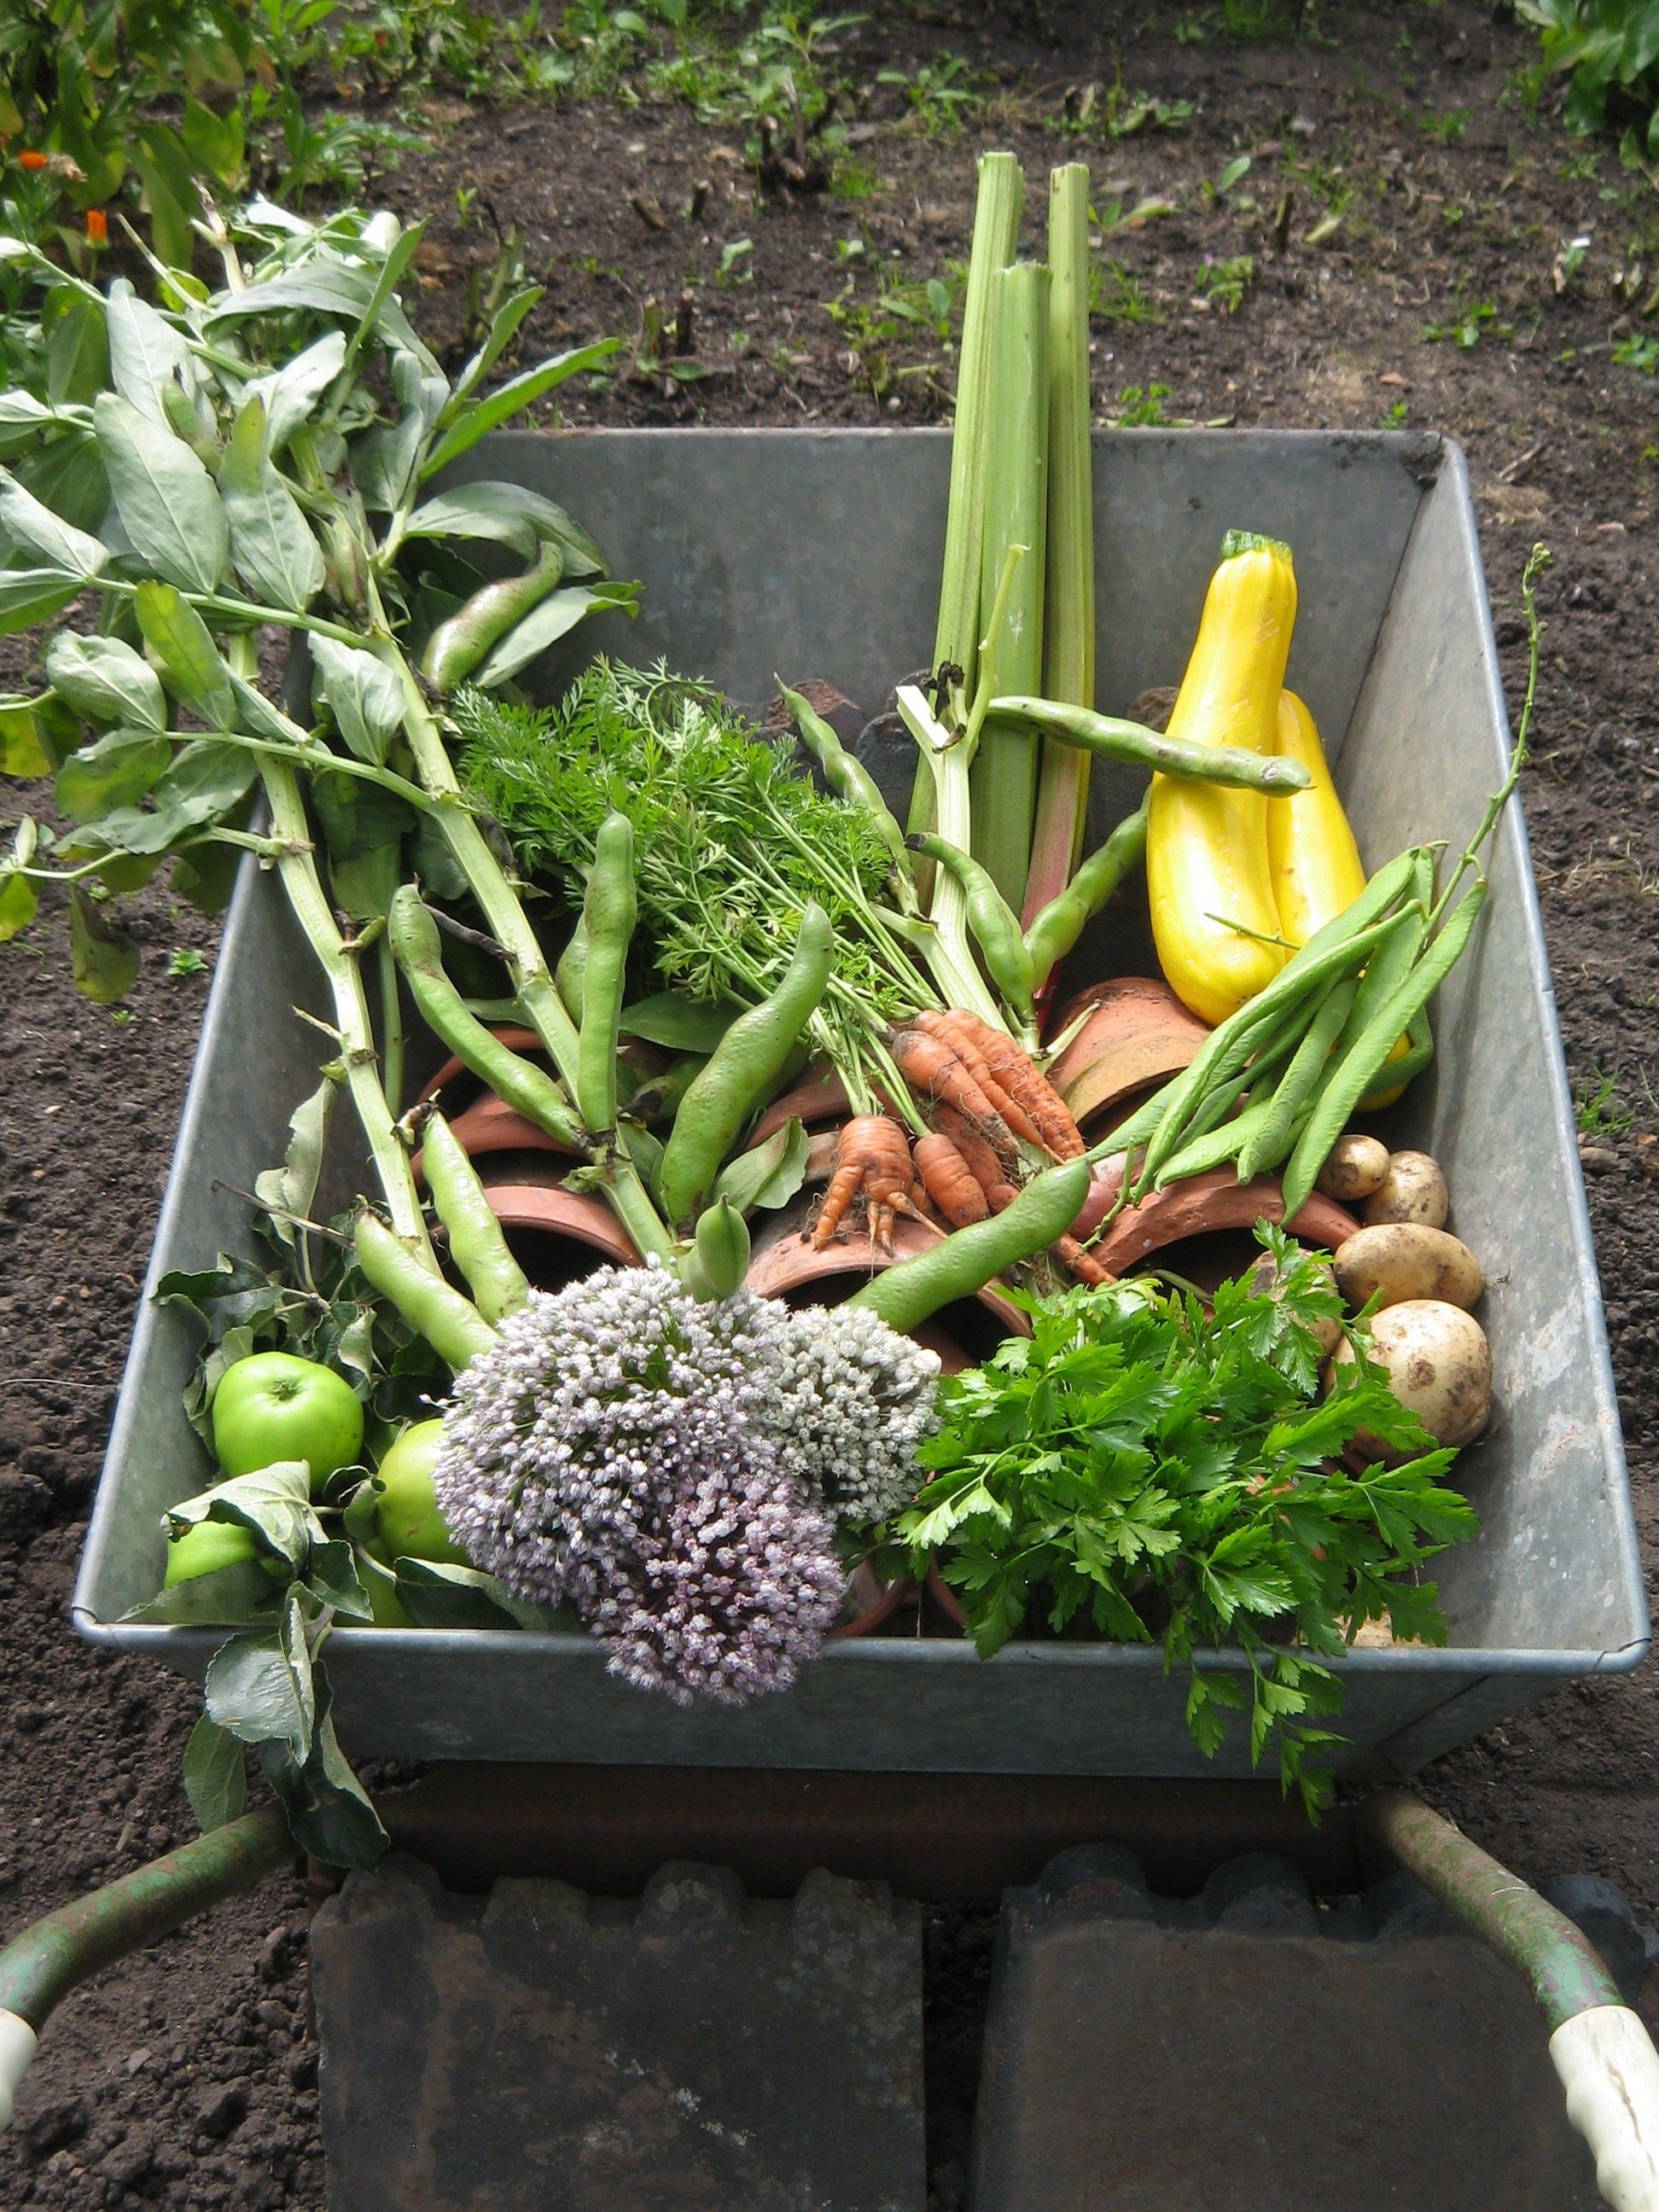 Picturesque A Wheelbarrow Of Produce At Hill Close Gardens Warwick  Hill  With Remarkable A Wheelbarrow Of Produce At Hill Close Gardens Warwick With Captivating Worx Garden Also Bents Garden In Addition Farm And Garden Machinery And Rougemont Gardens As Well As Hand Held Garden Sprayers Additionally Large Black Garden Planters From Itpinterestcom With   Captivating A Wheelbarrow Of Produce At Hill Close Gardens Warwick  Hill  With Picturesque Rougemont Gardens As Well As Hand Held Garden Sprayers Additionally Large Black Garden Planters And Remarkable A Wheelbarrow Of Produce At Hill Close Gardens Warwick Via Itpinterestcom